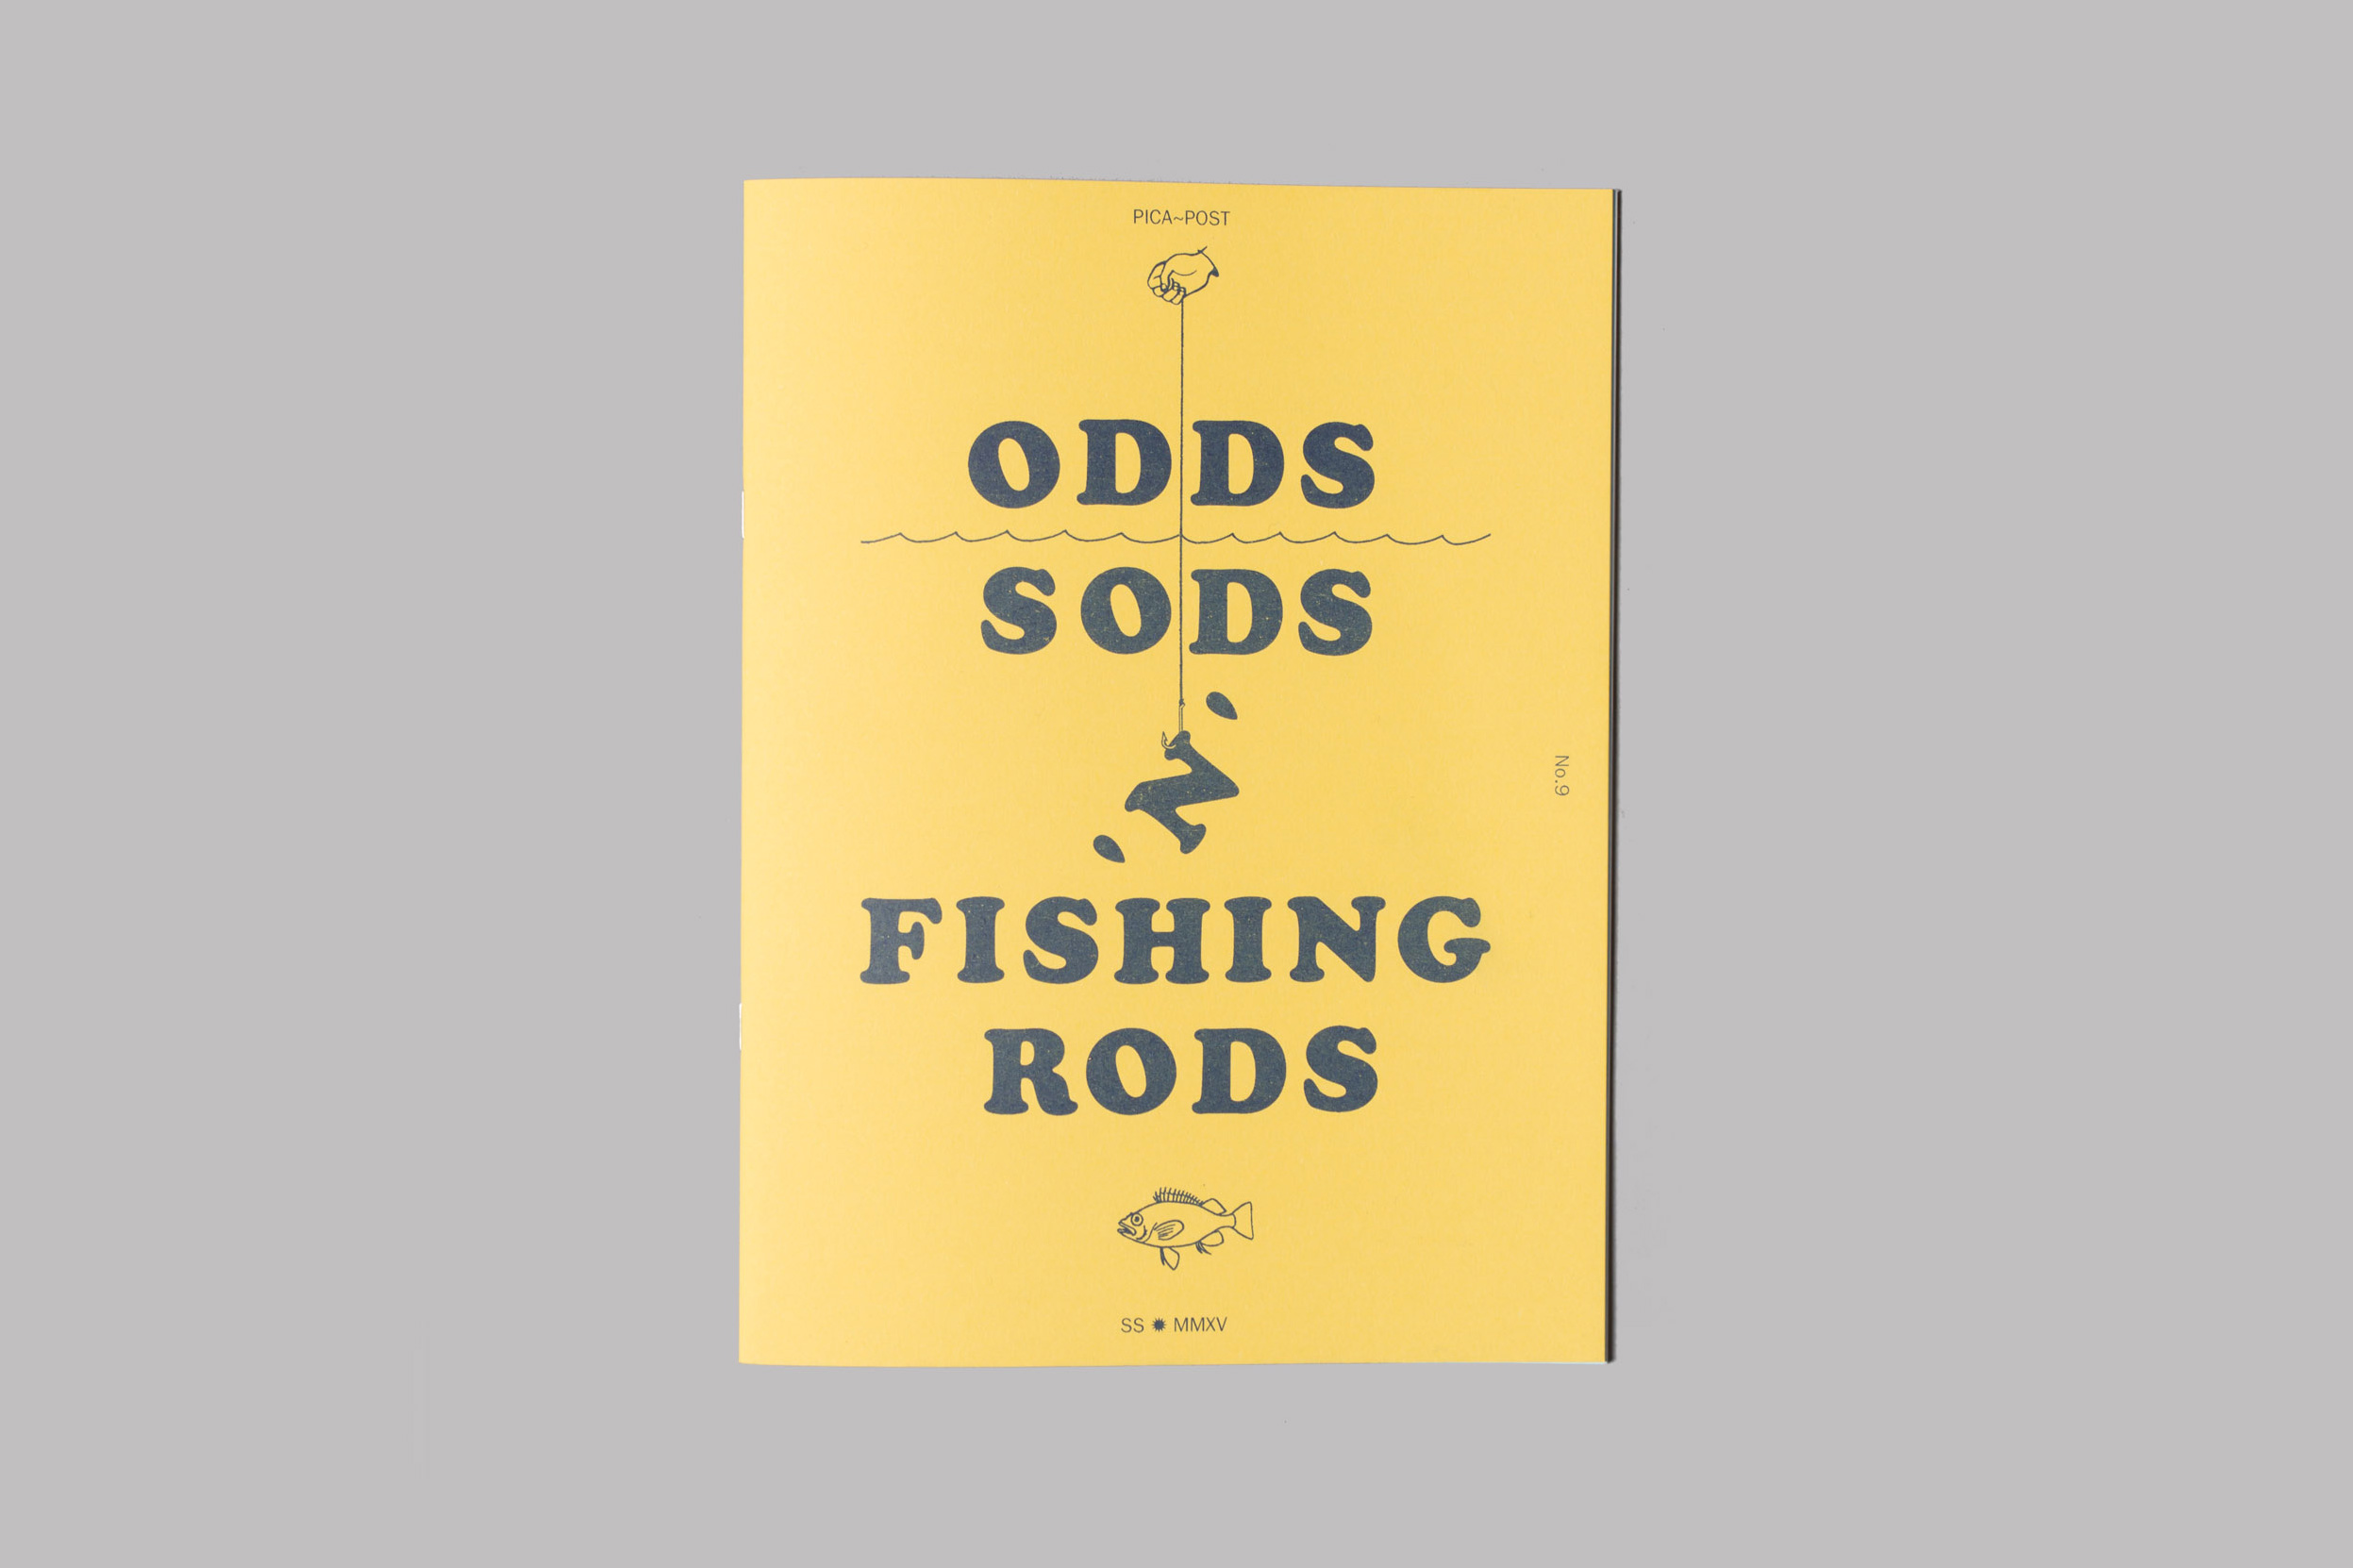 """Oi Polloi 'Pica-Post' Zine Issue 9 """"Odds, Sods 'n' Fishing Rods"""""""